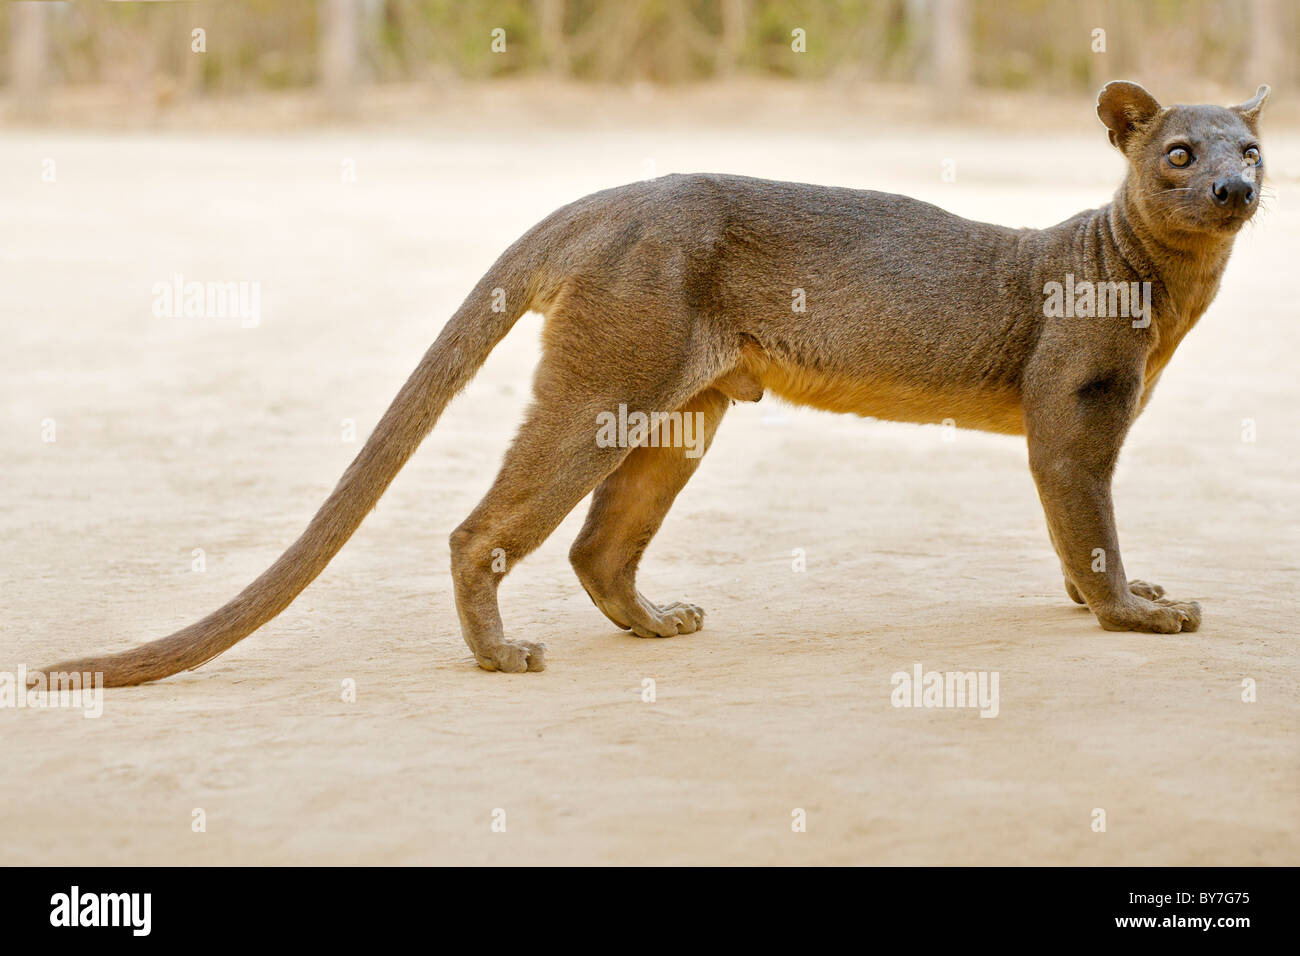 an endangered fossa cryptoprocta ferox one of the few madagascan